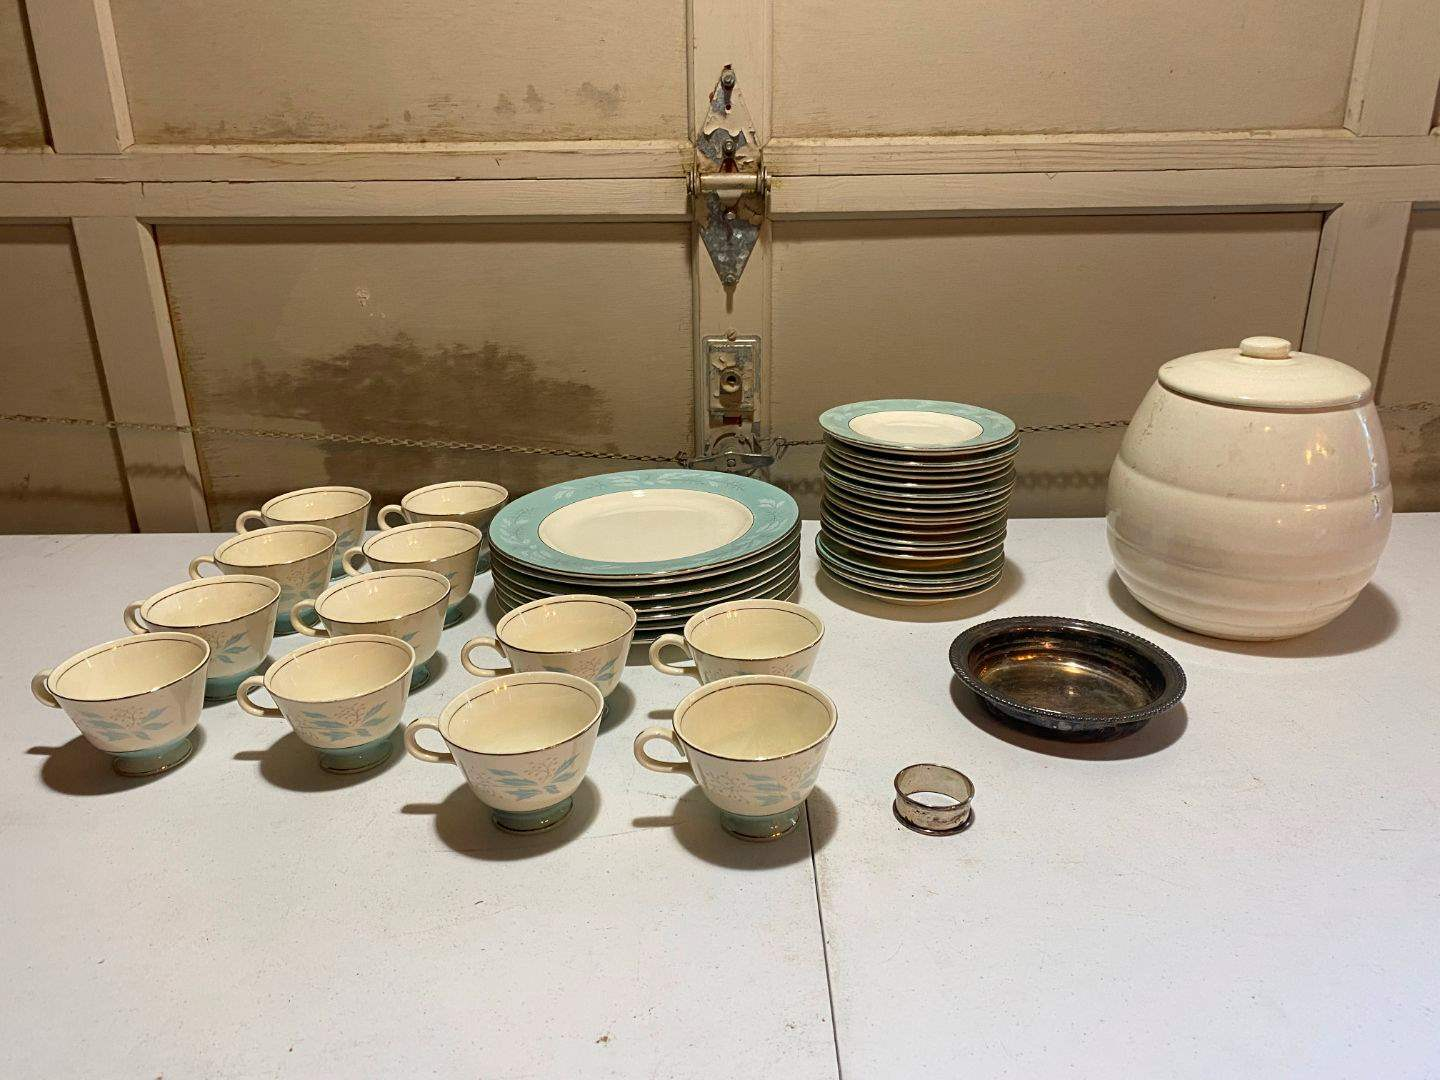 Lot # 207 - Sterling Silver Napkin Ring, Homer Laughlin Cavalier China, Cookie Jar. (main image)